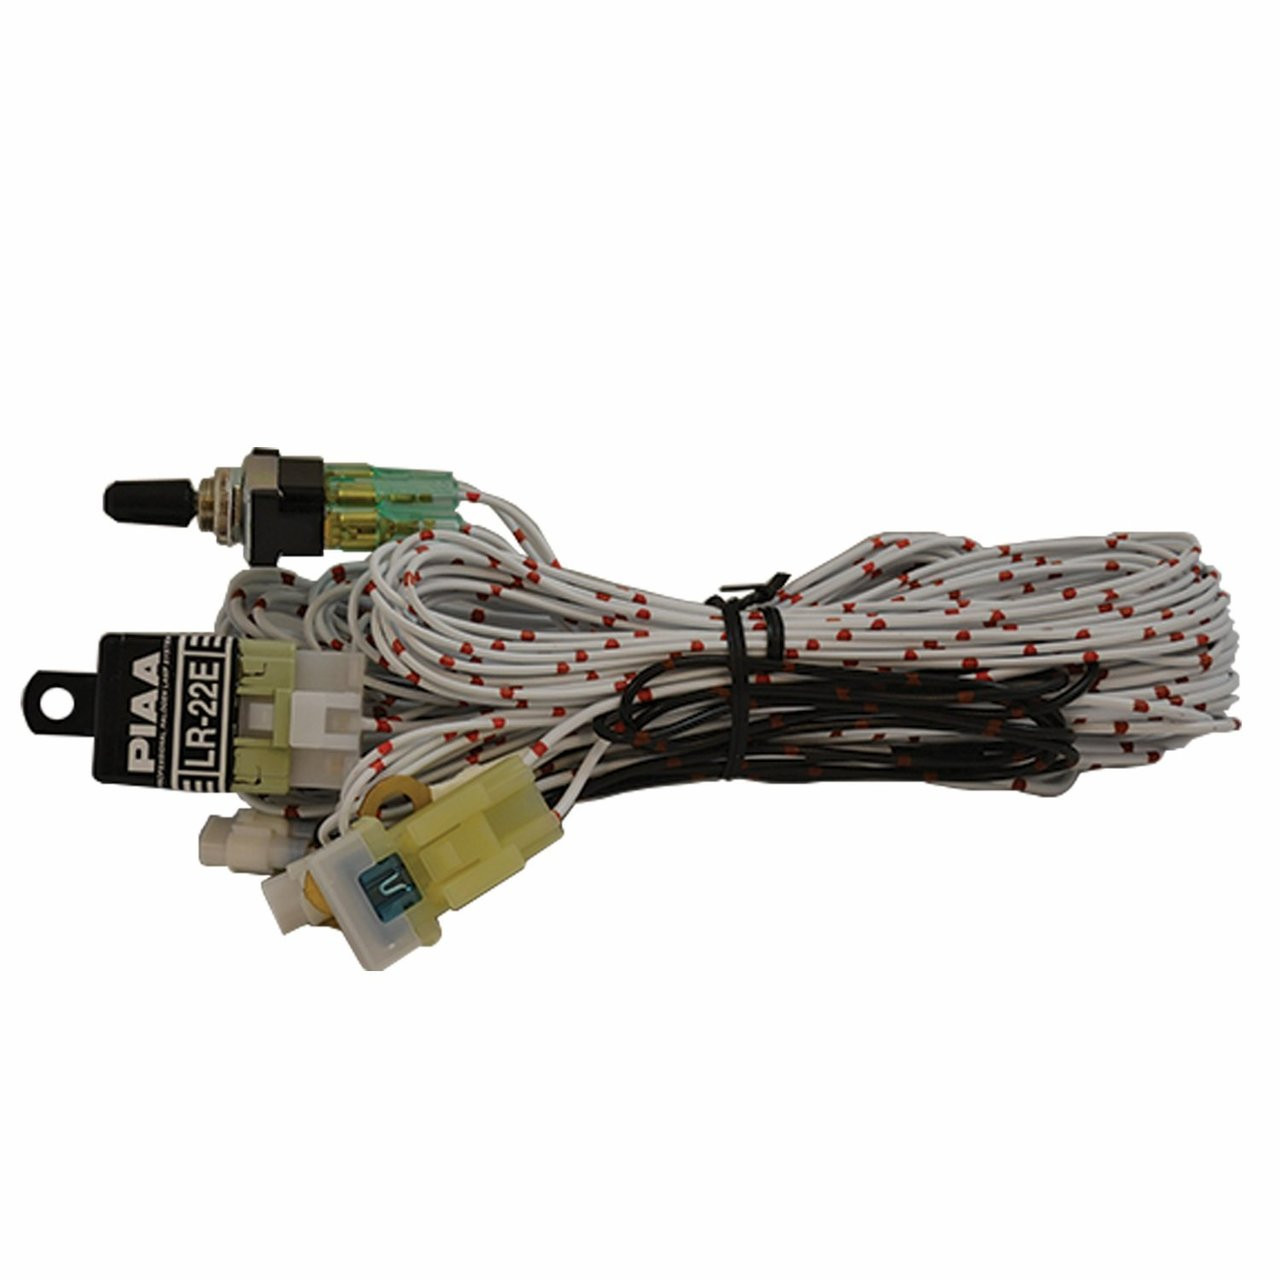 piaa 34046 1500 and 2000 series back up lamp wiring harness -  blinglights.com  blinglights.com